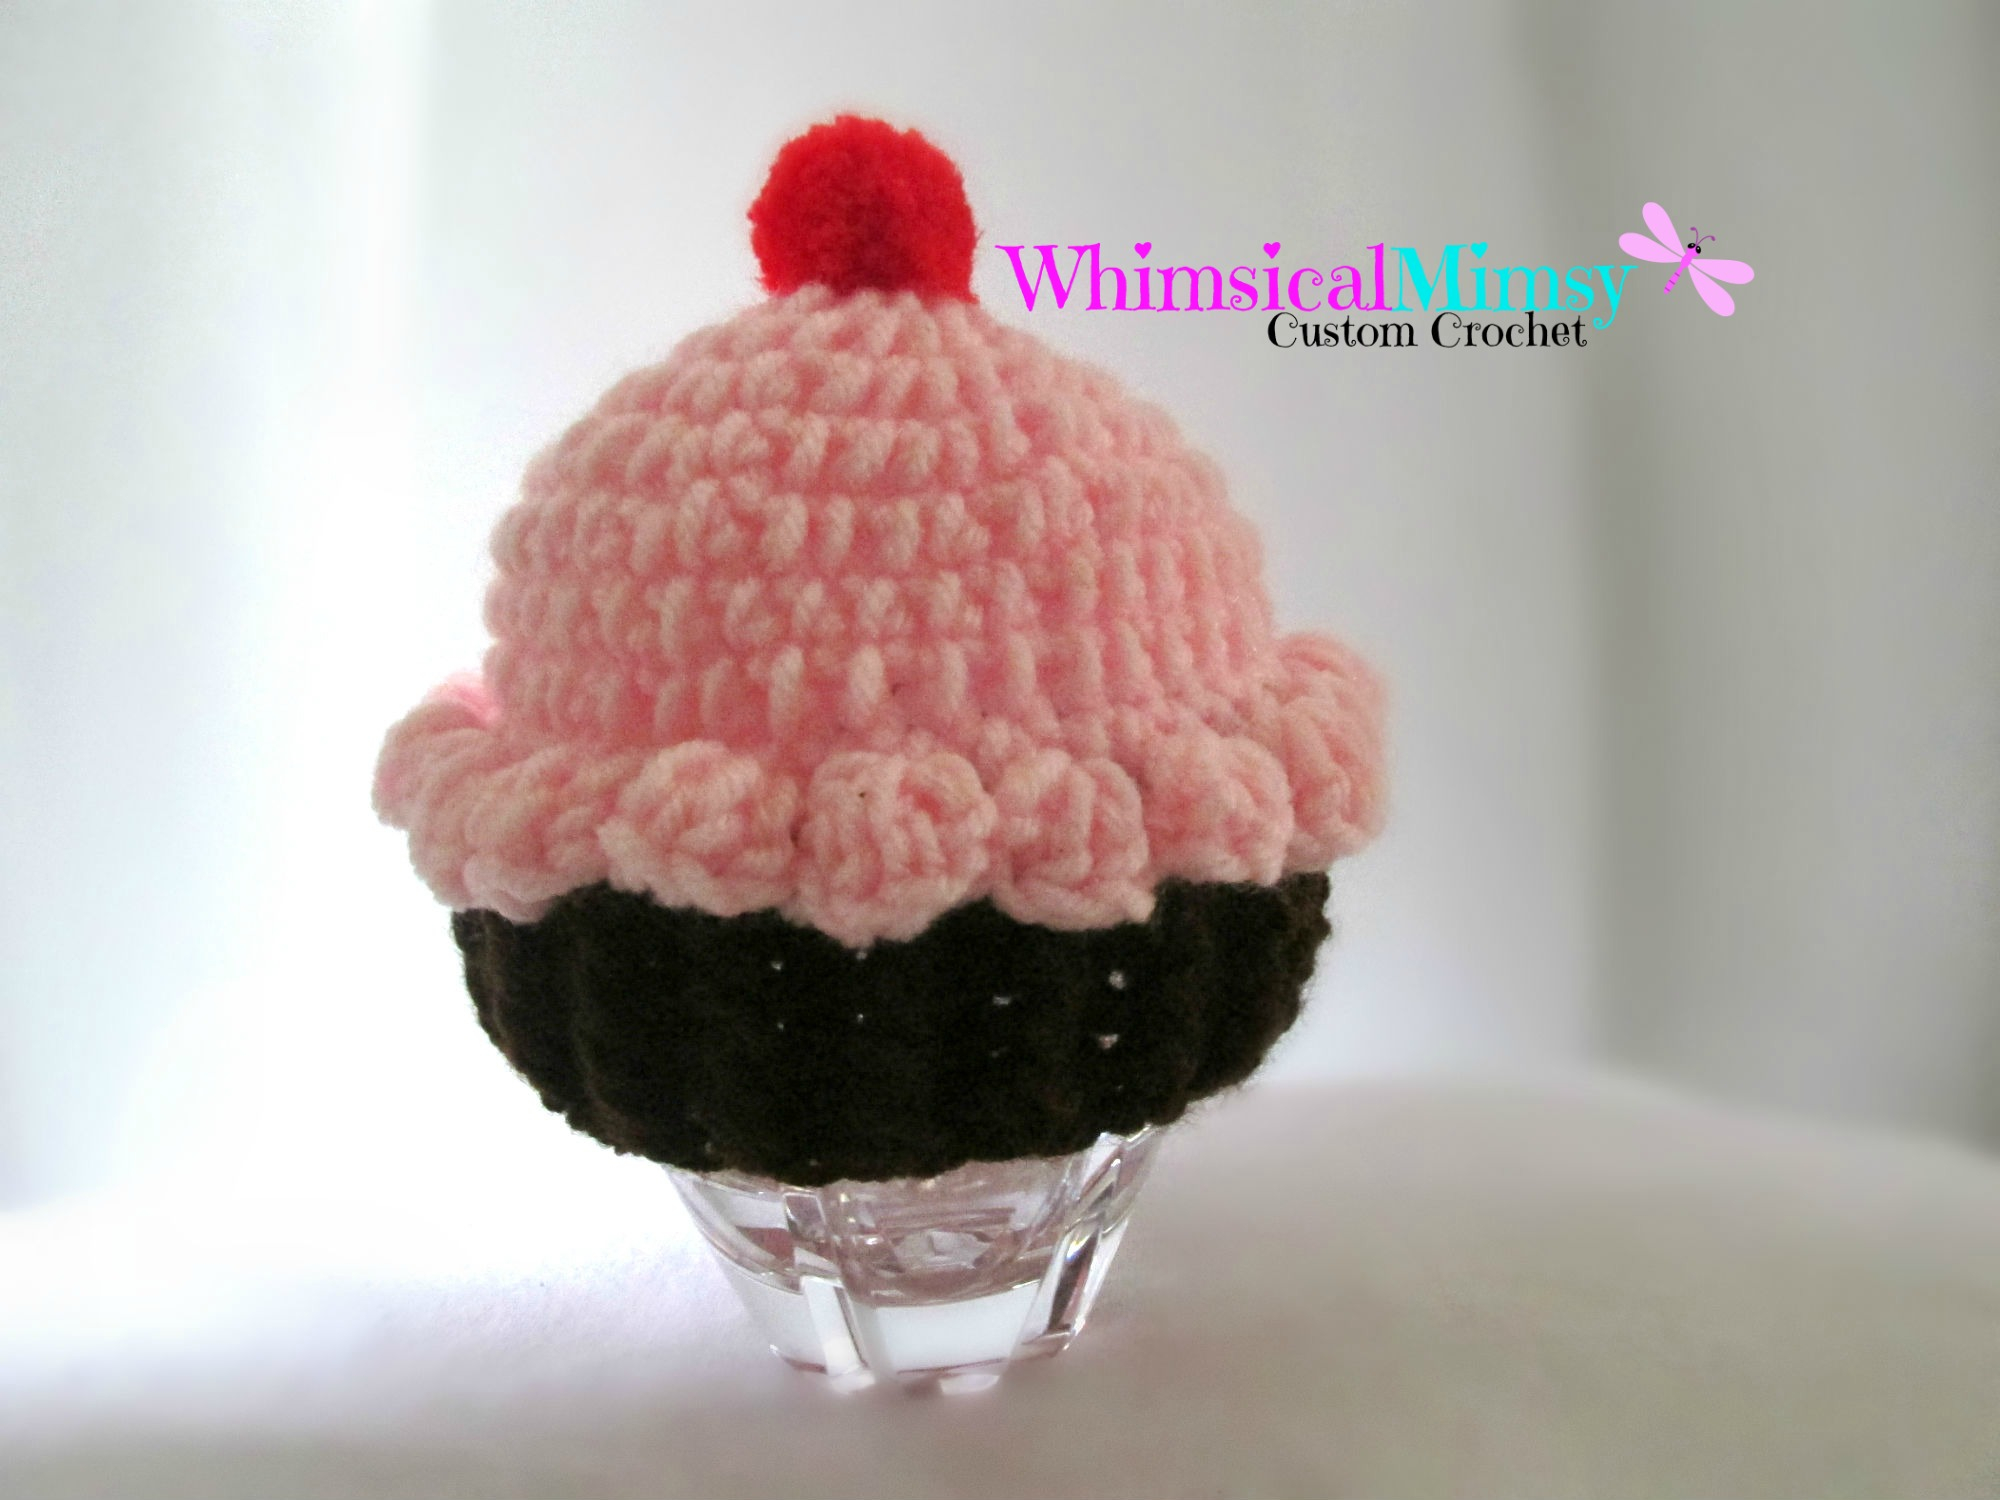 Knitted Cupcake Hat Pattern Crochet Ba Pink Cupcake Hat From Whimsical Mimsy